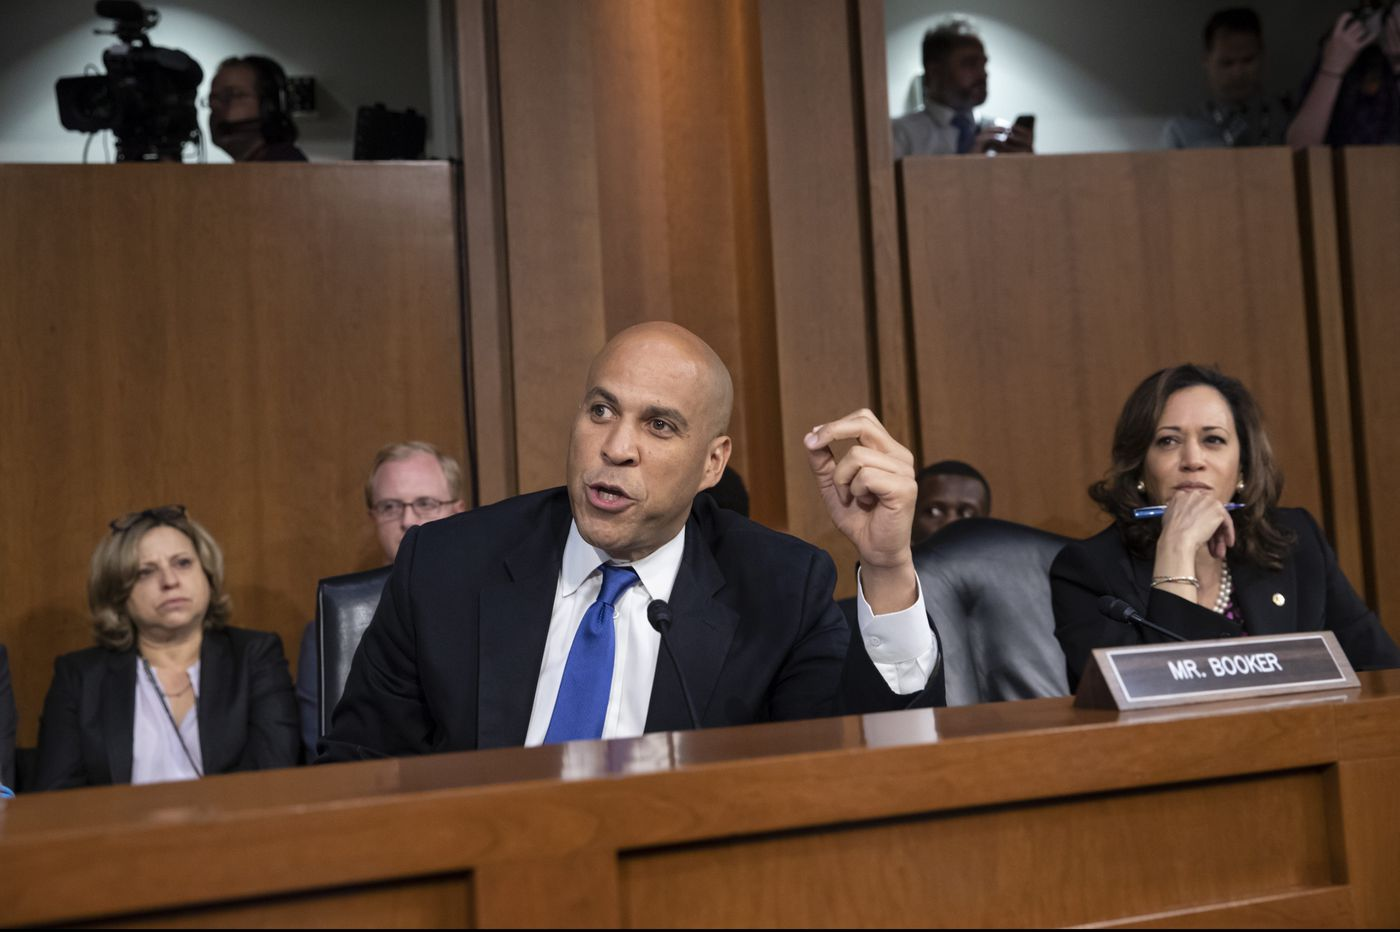 Cory Booker to visit Iowa, stoking presidential speculation